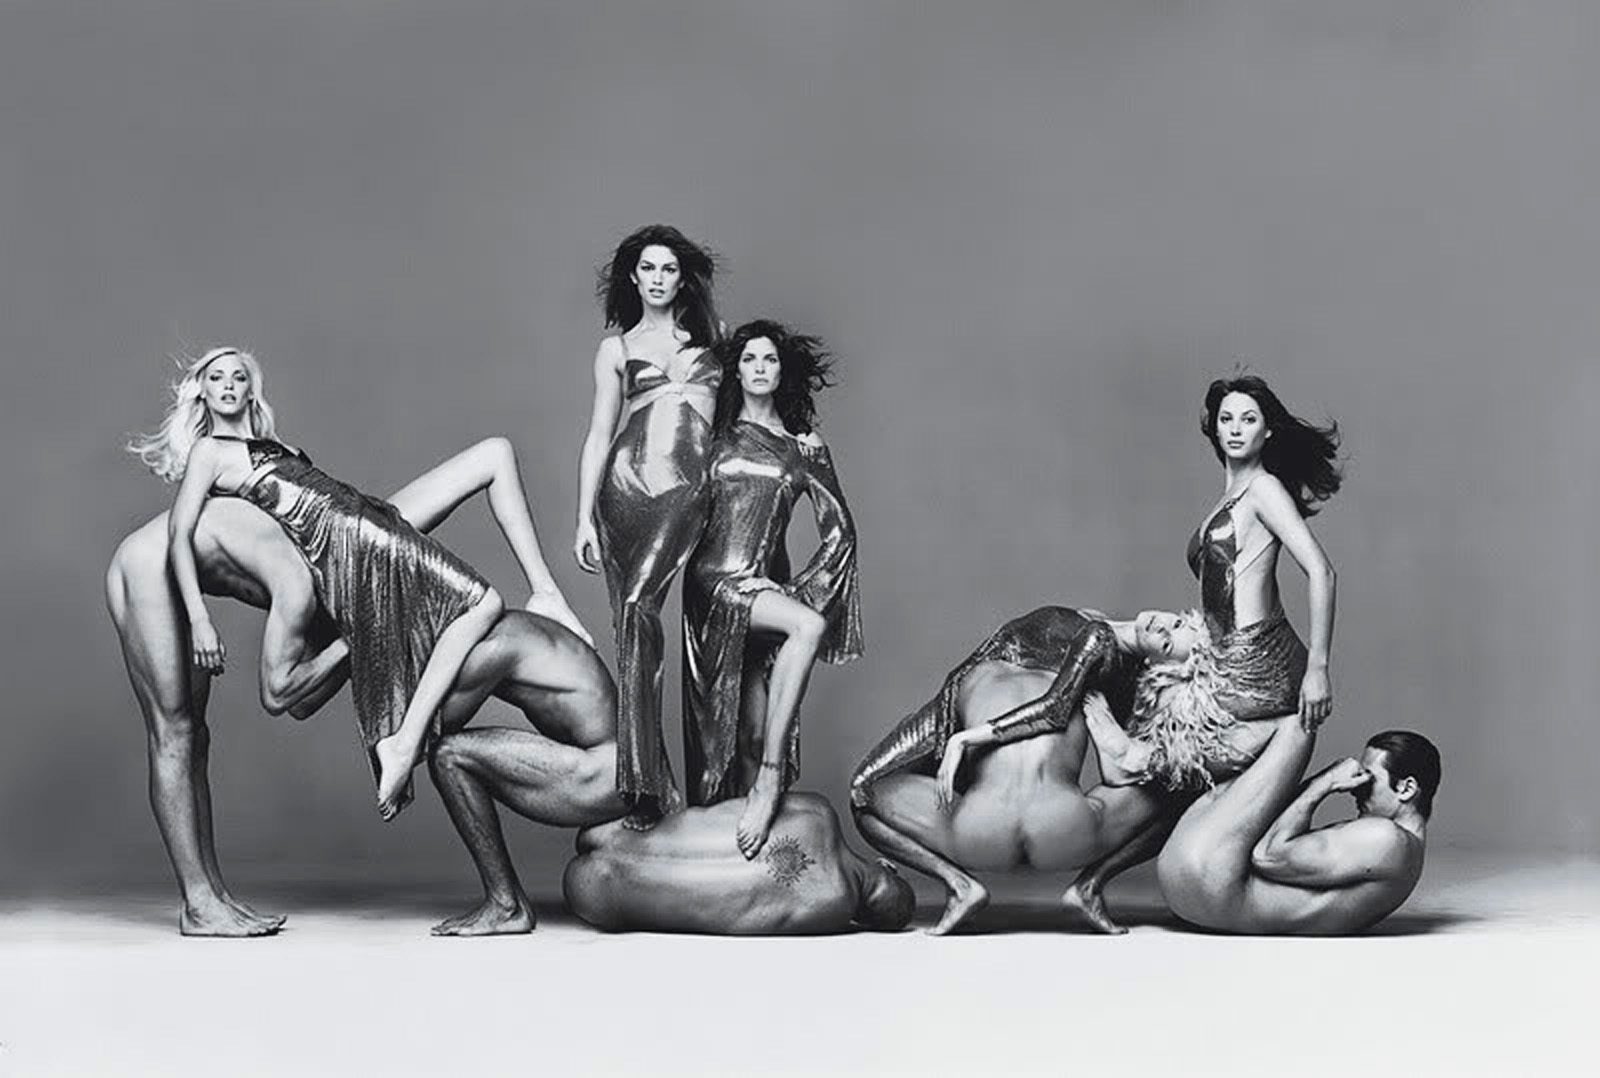 richard-avedon-versace-campaign-group-shot